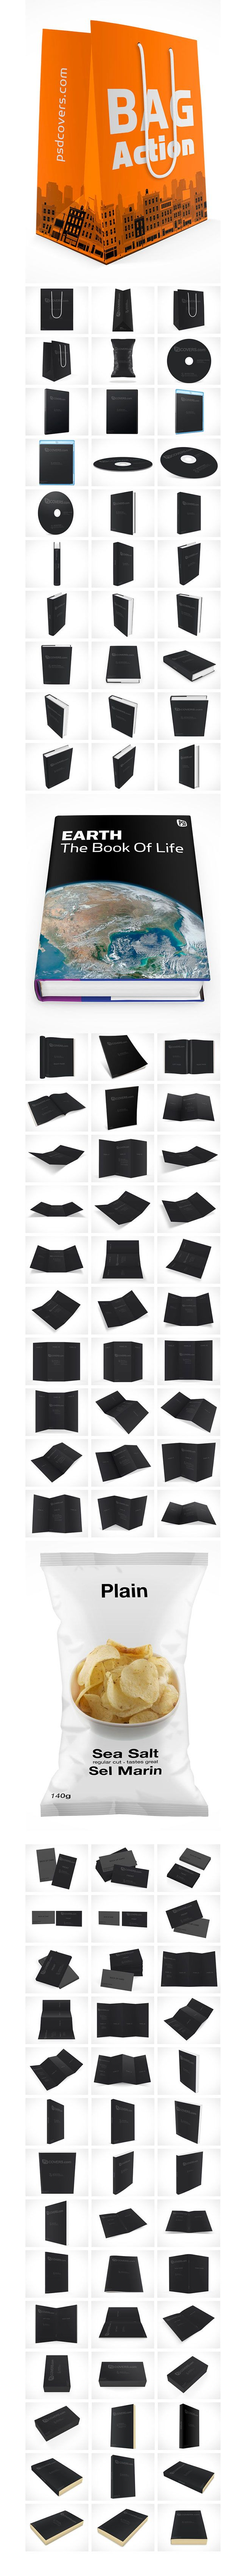 Free download: 100 PSD mock-ups (bags, boxes, books, cds, pamplets, etc.)